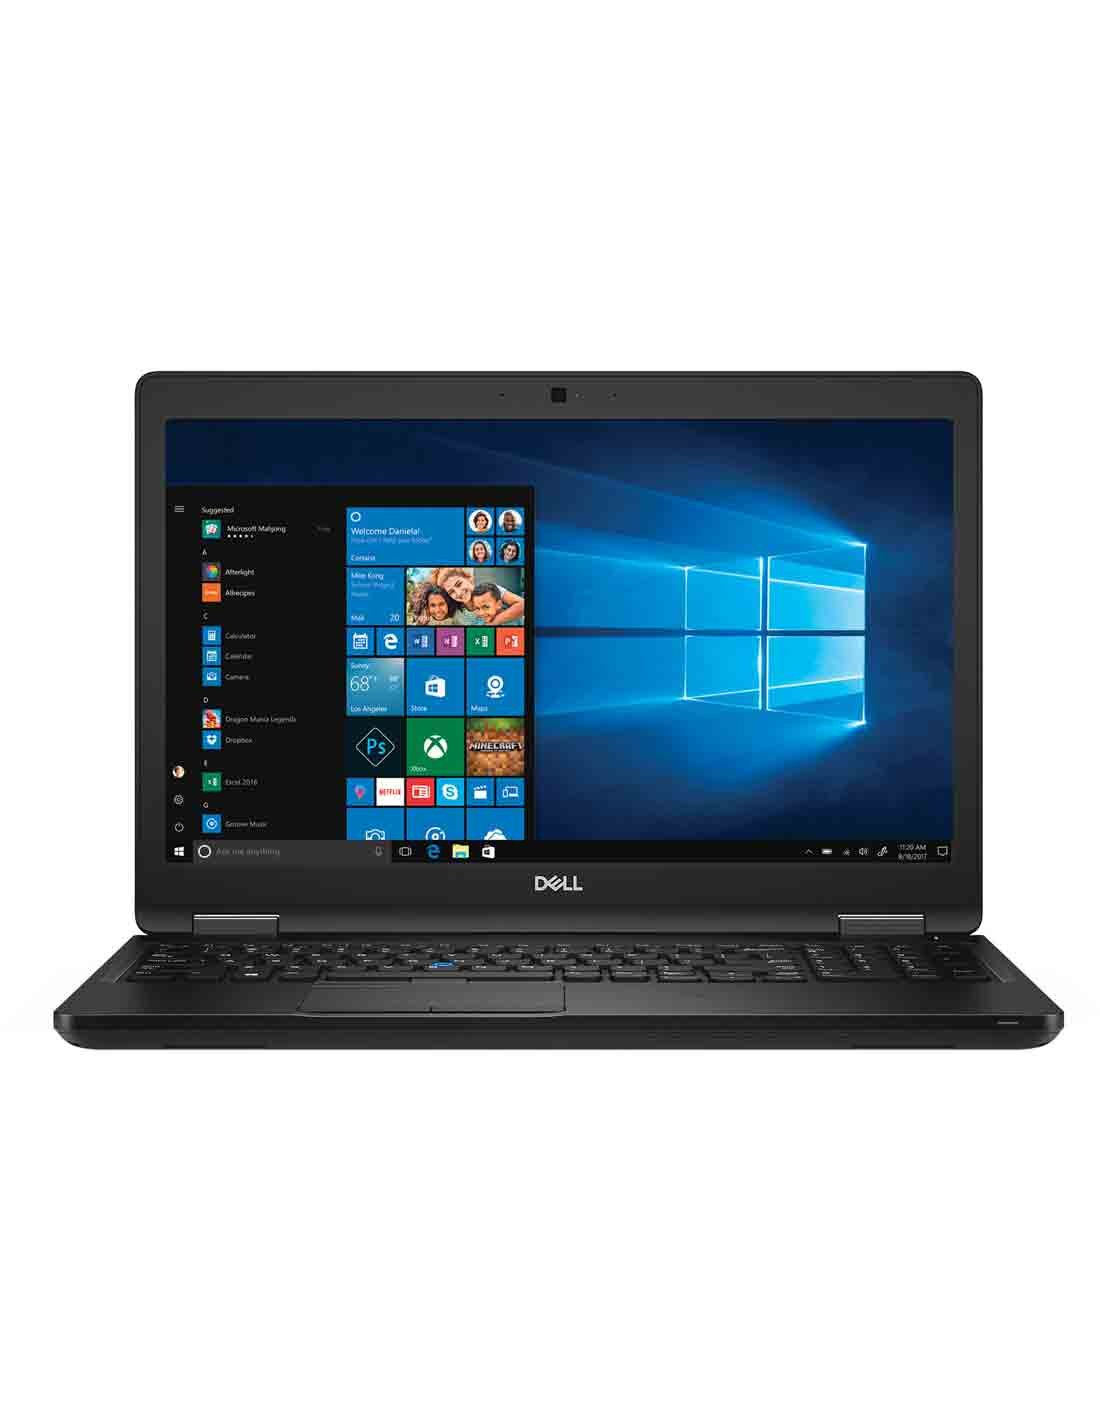 Dell Latitude 5590 Laptop i7 at the cheapest price and fast free delivery in Dubai UAE